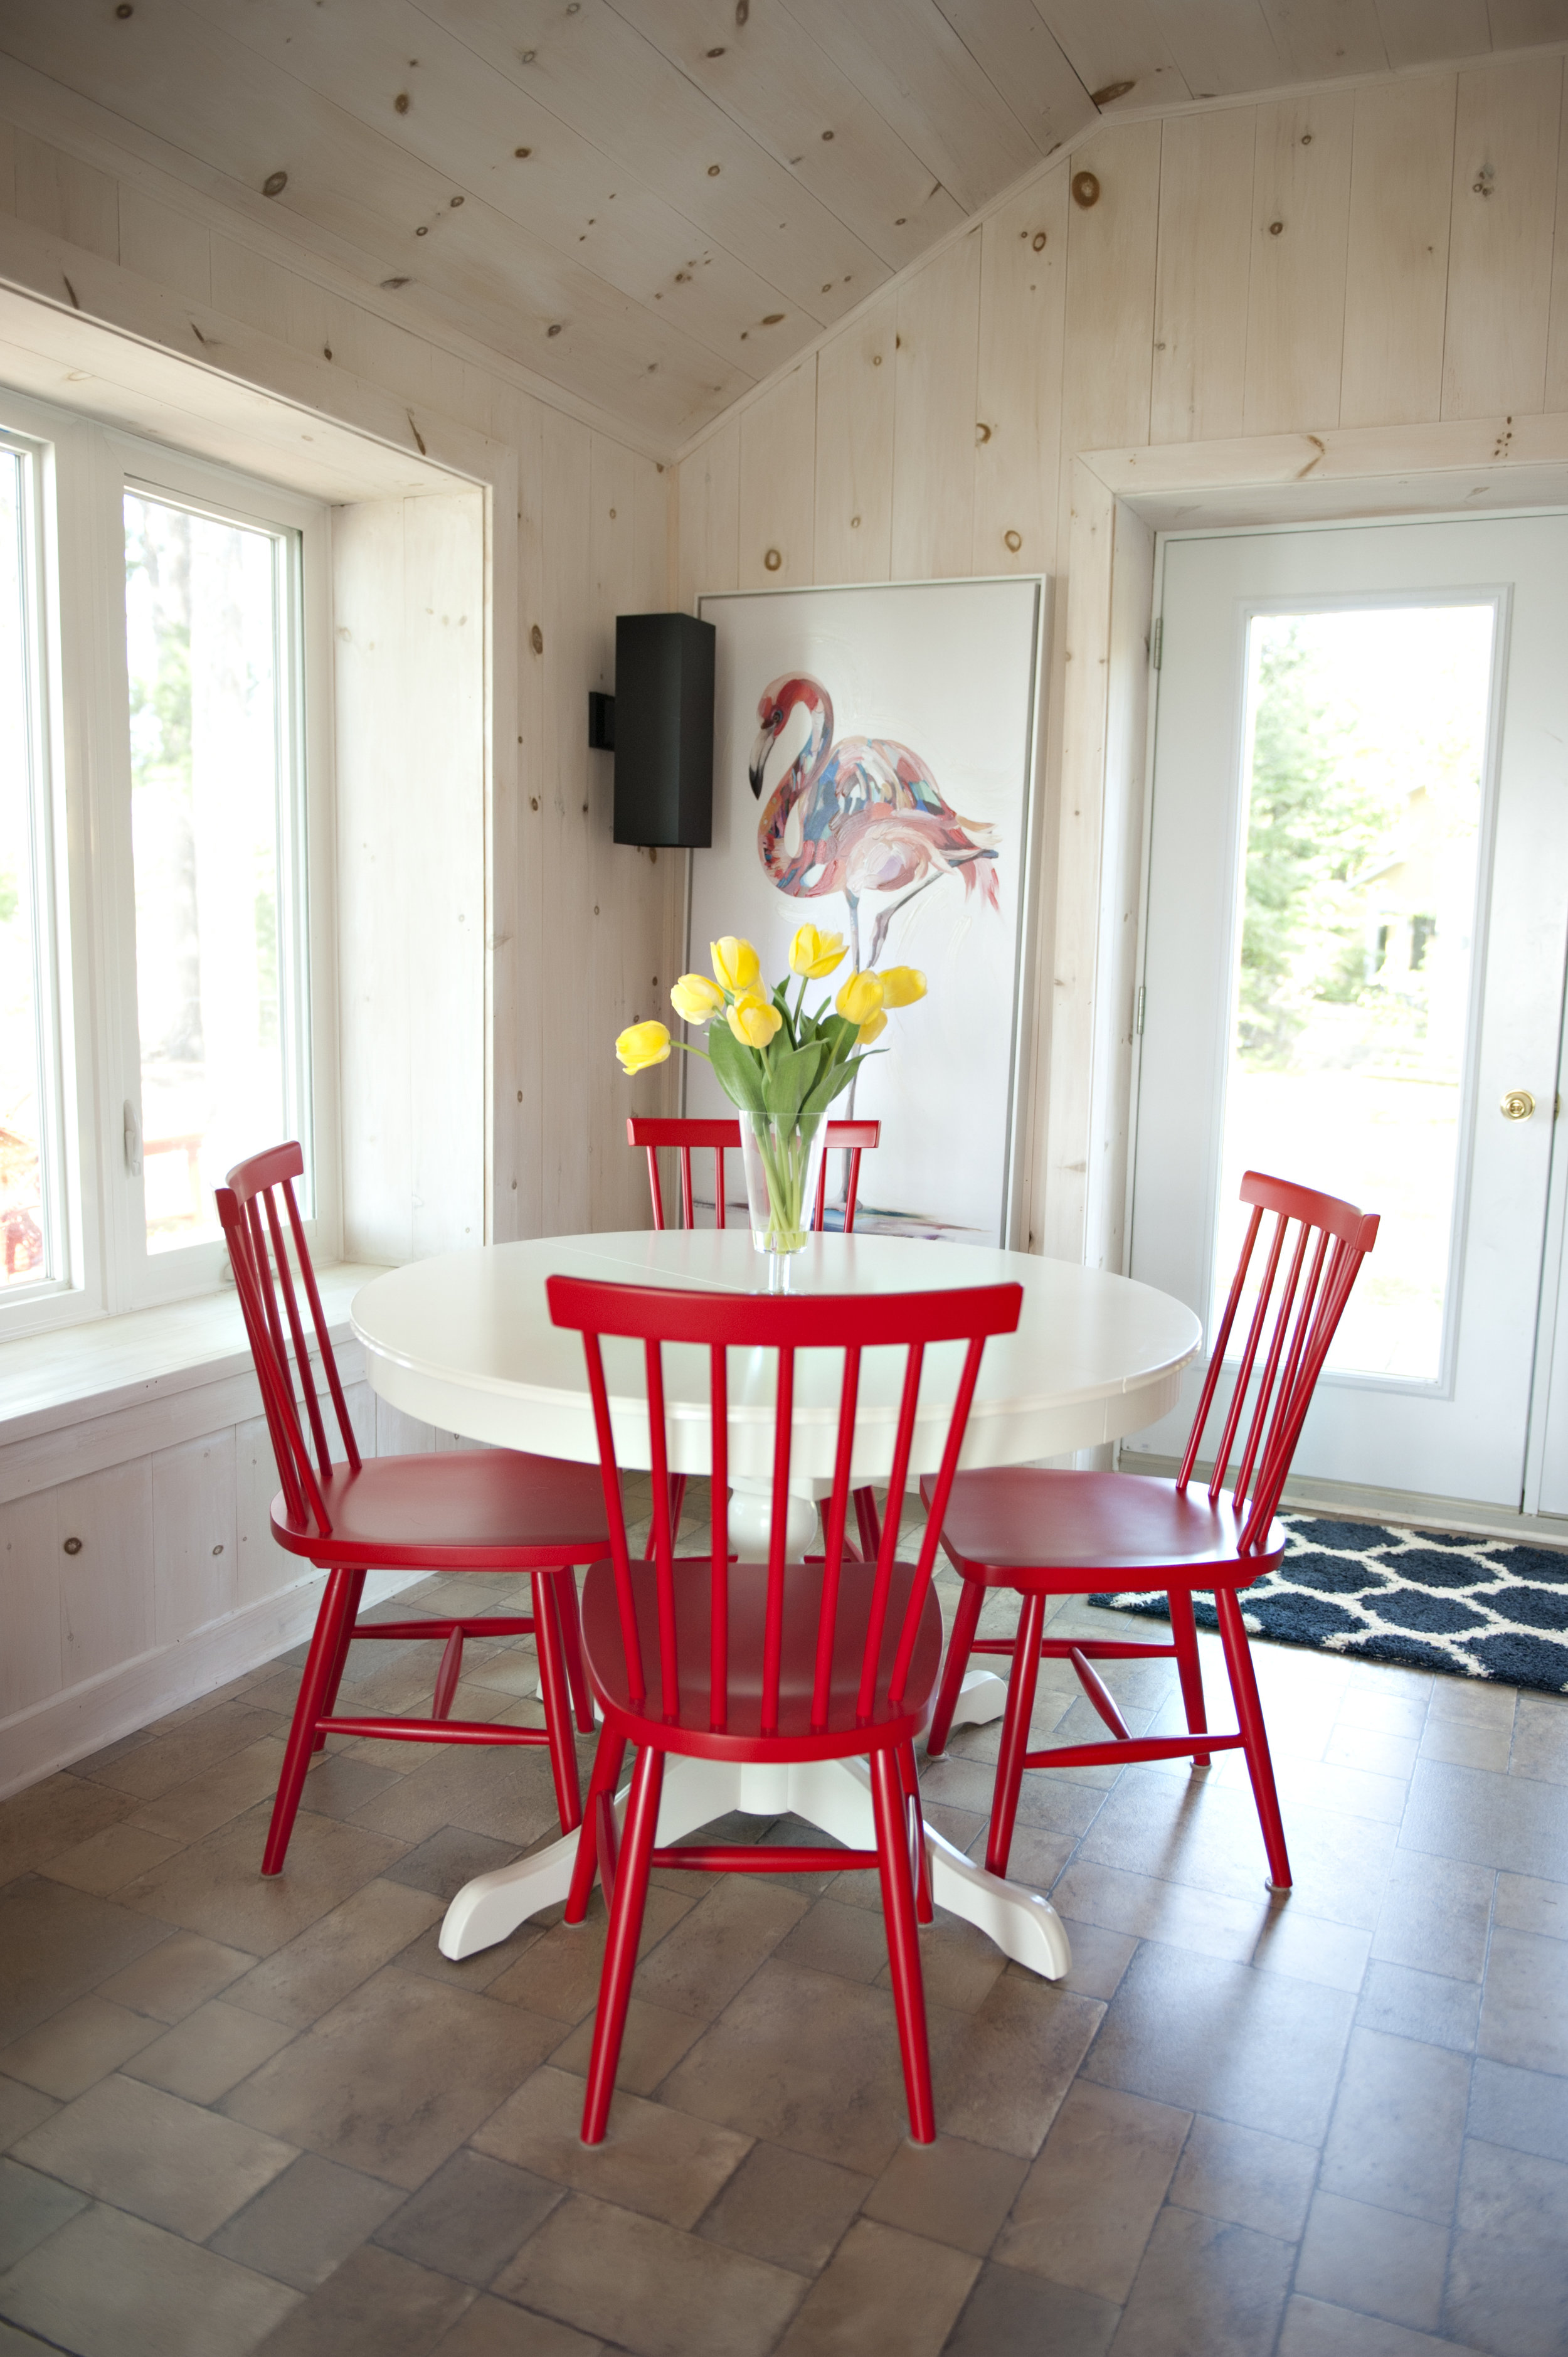 Candace-Plotz-Design-Beach-House-2-Dining-Table-Red-Chairs